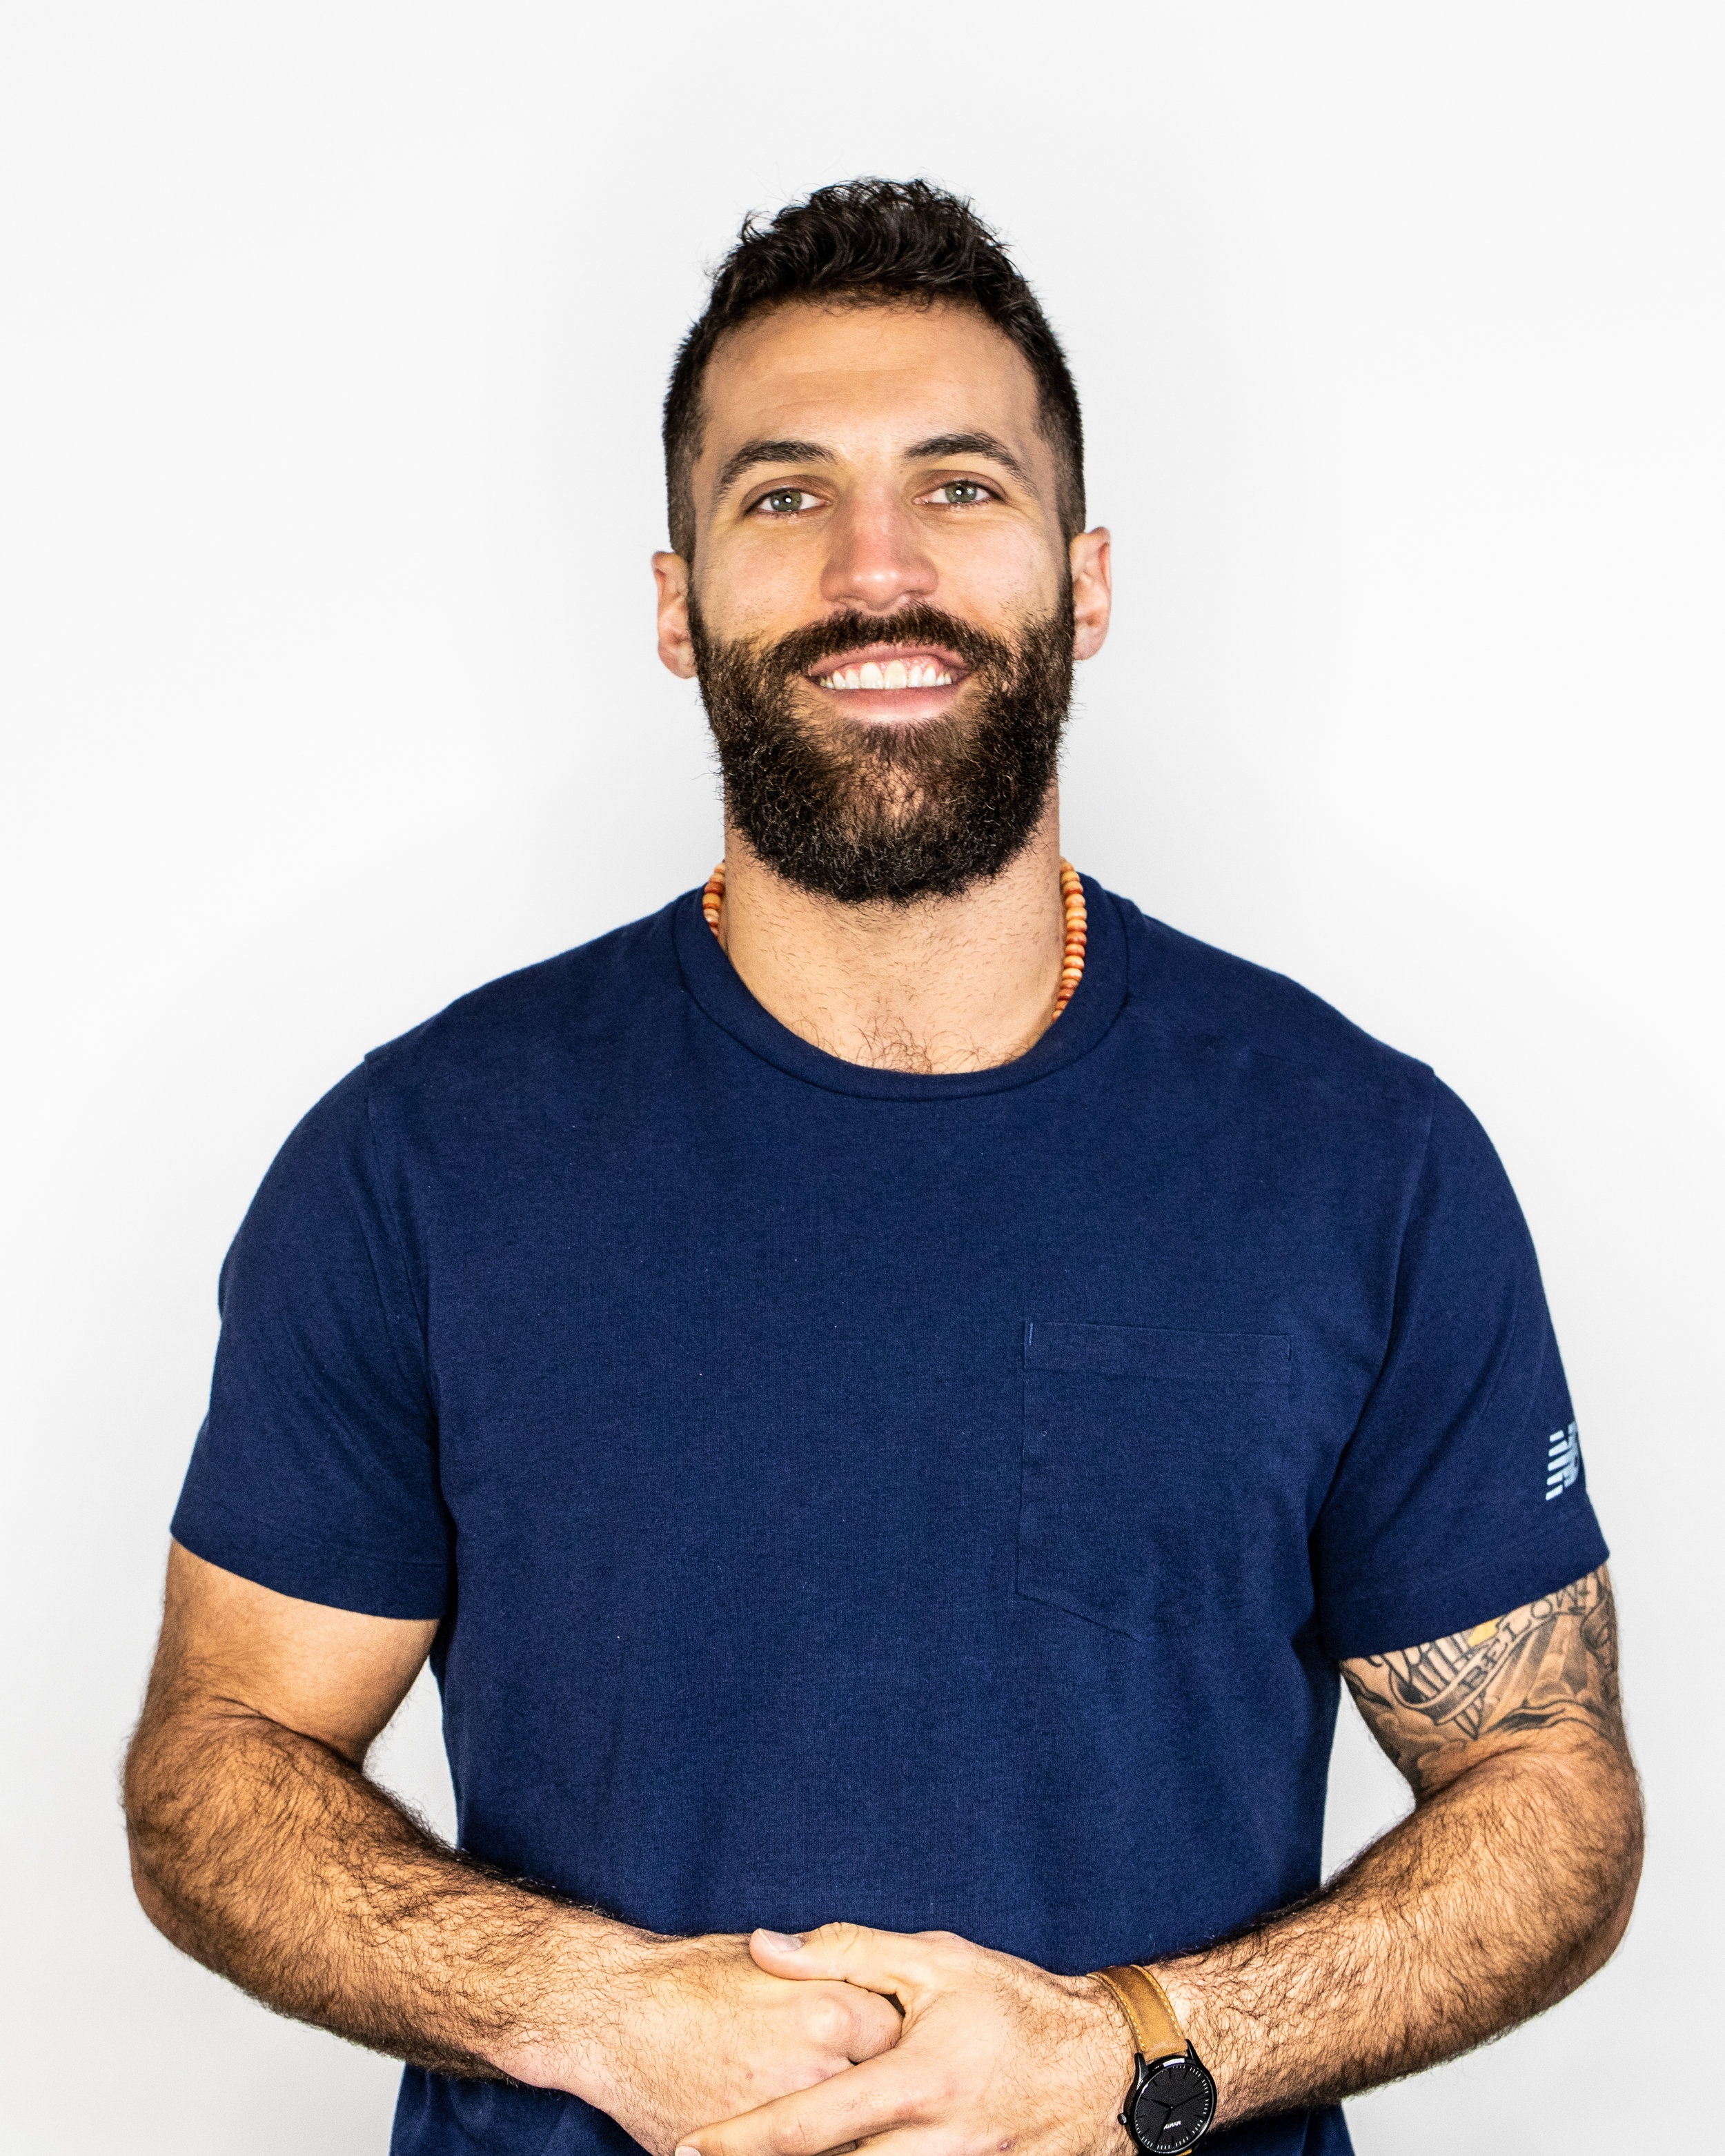 Paul Rabil - Professional Lacrosse Player - Co-founder of Premier Lacrosse League